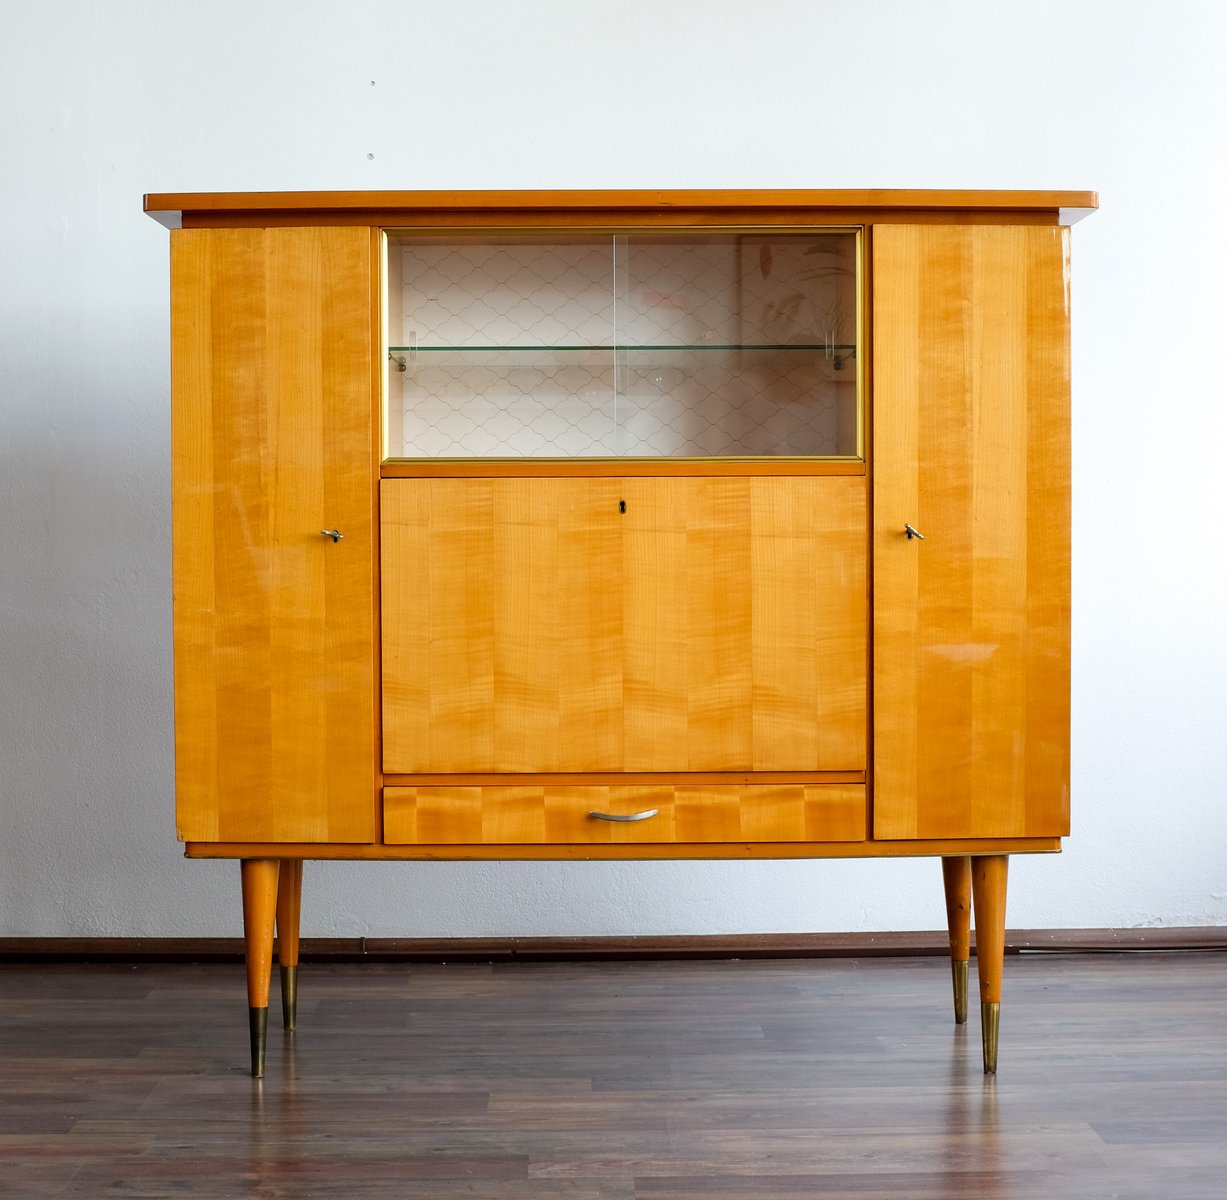 Sale 1950s Kitchen Cabinets: Vintage Cabinet, 1950s For Sale At Pamono